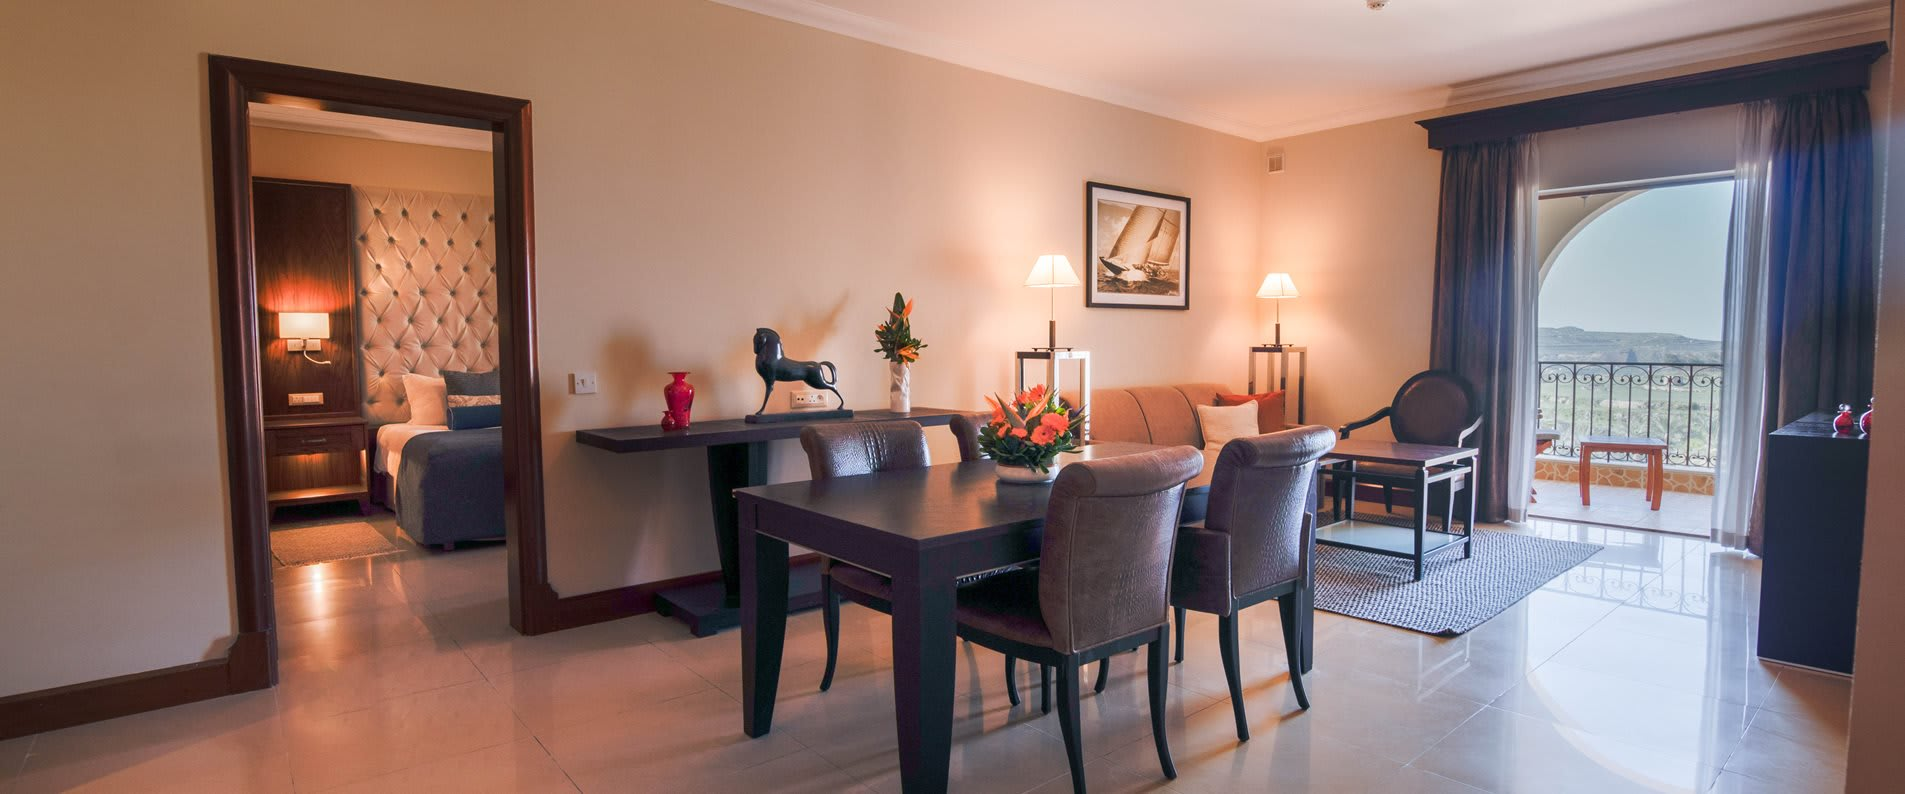 2 bedroom family suite dining table